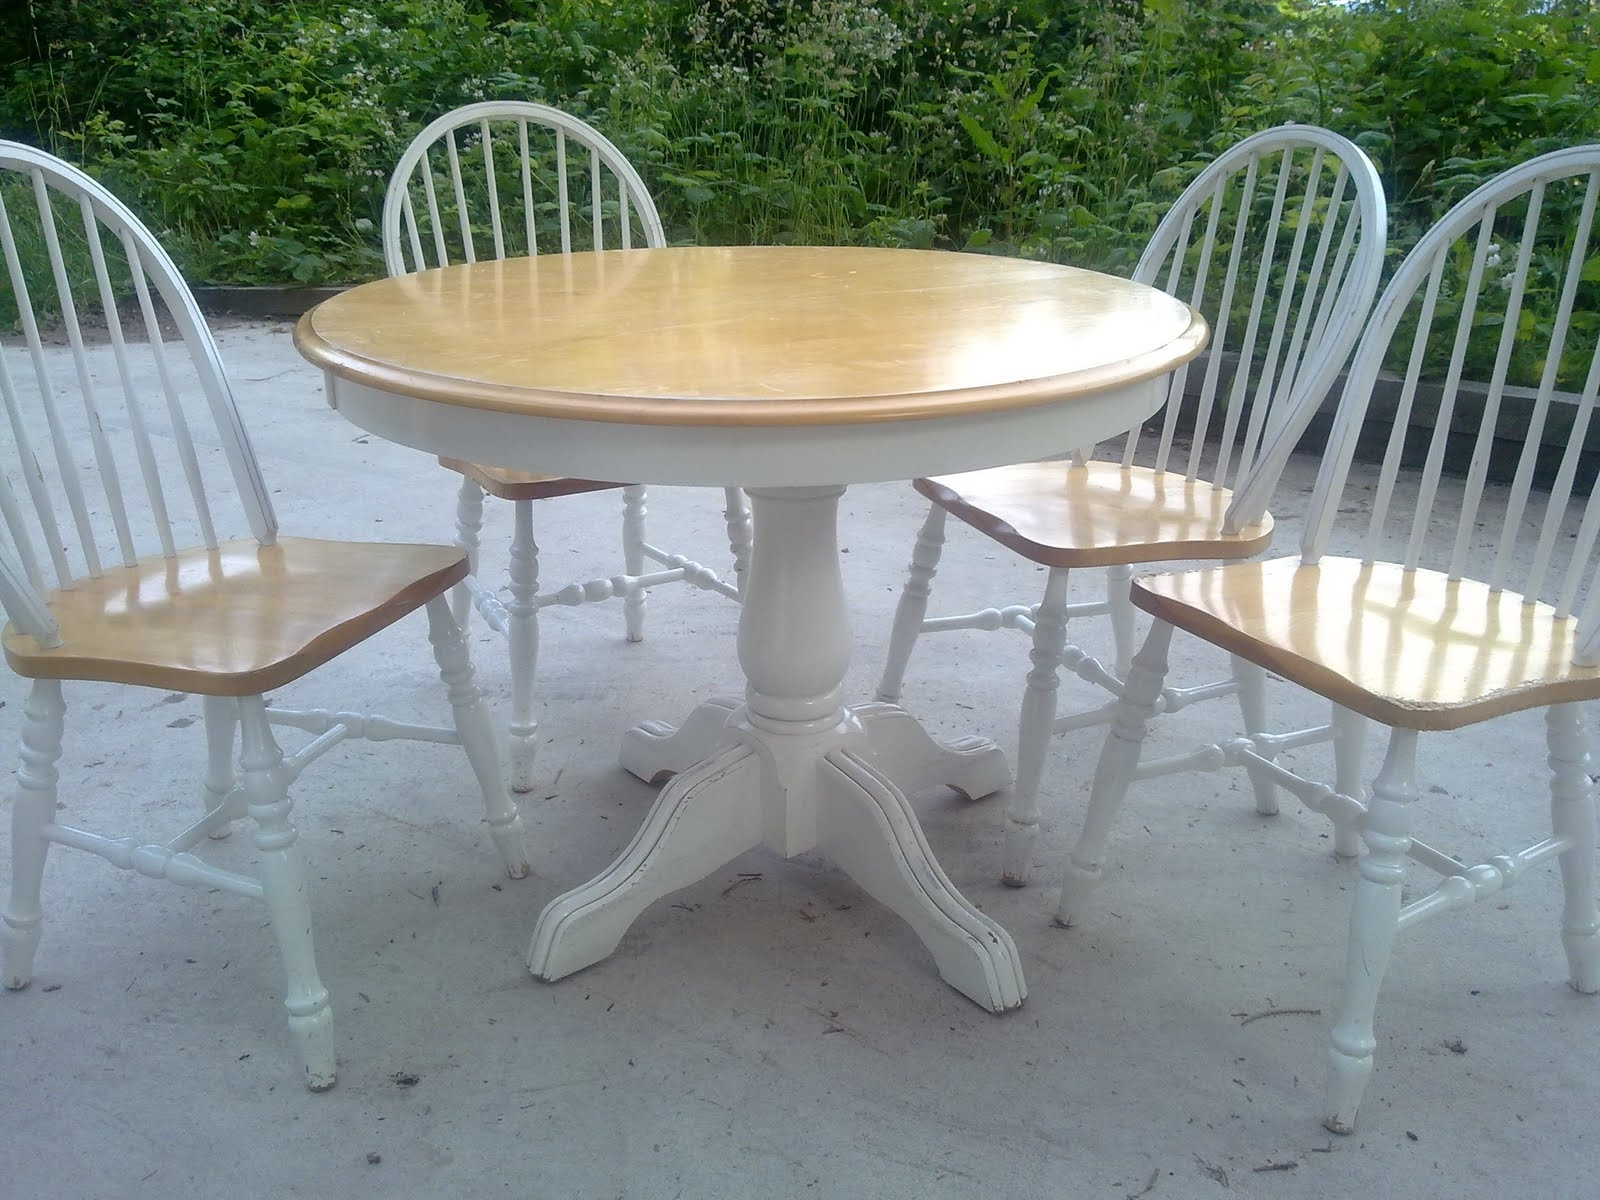 Top 50 Shabby Chic Round Dining Table And Chairs – Home Decor Ideas Regarding Most Up To Date Shabby Chic Dining Sets (View 19 of 25)